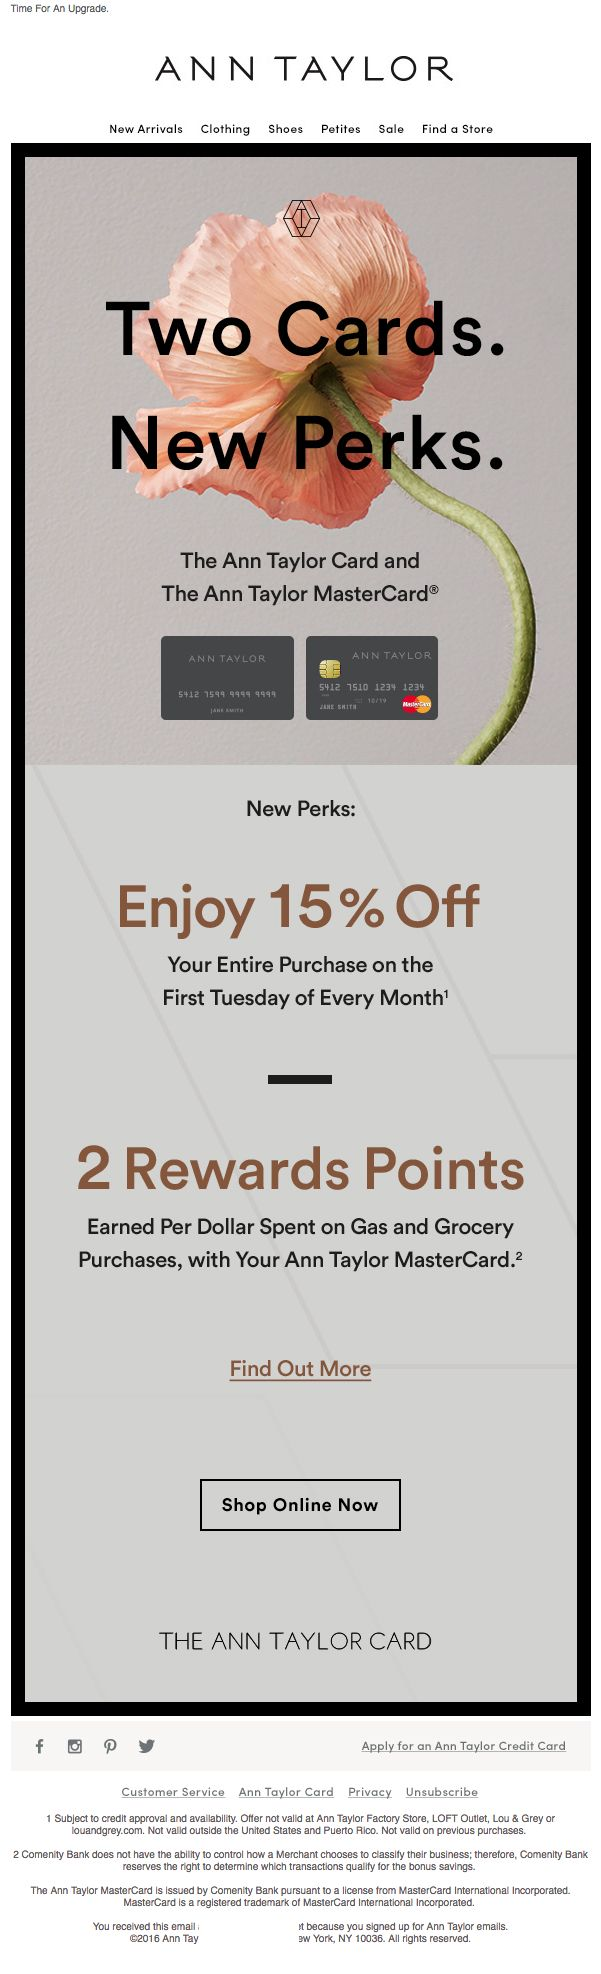 73 best email loyalty images on pinterest loyalty email loyalty